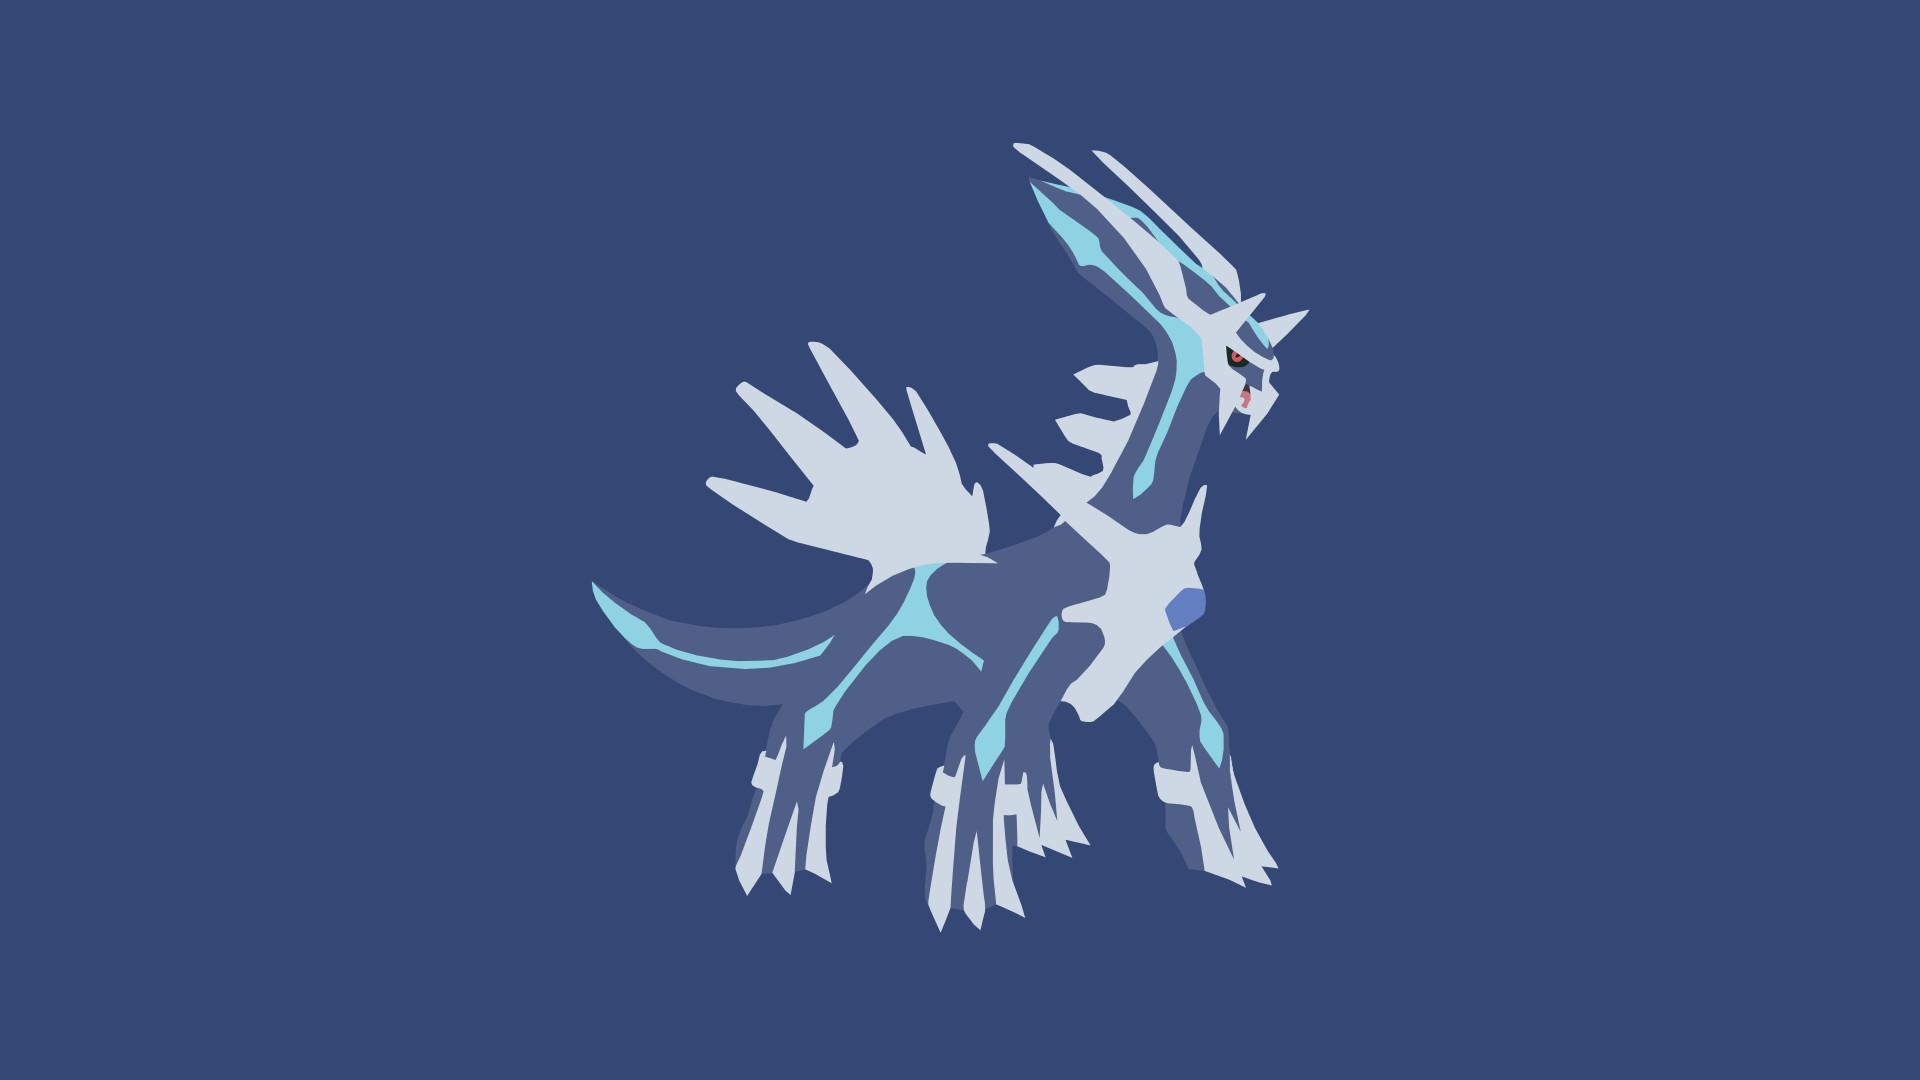 Res: 1920x1080, Minimalistic Wallpaper: Dialga (#483) by MardGeerT